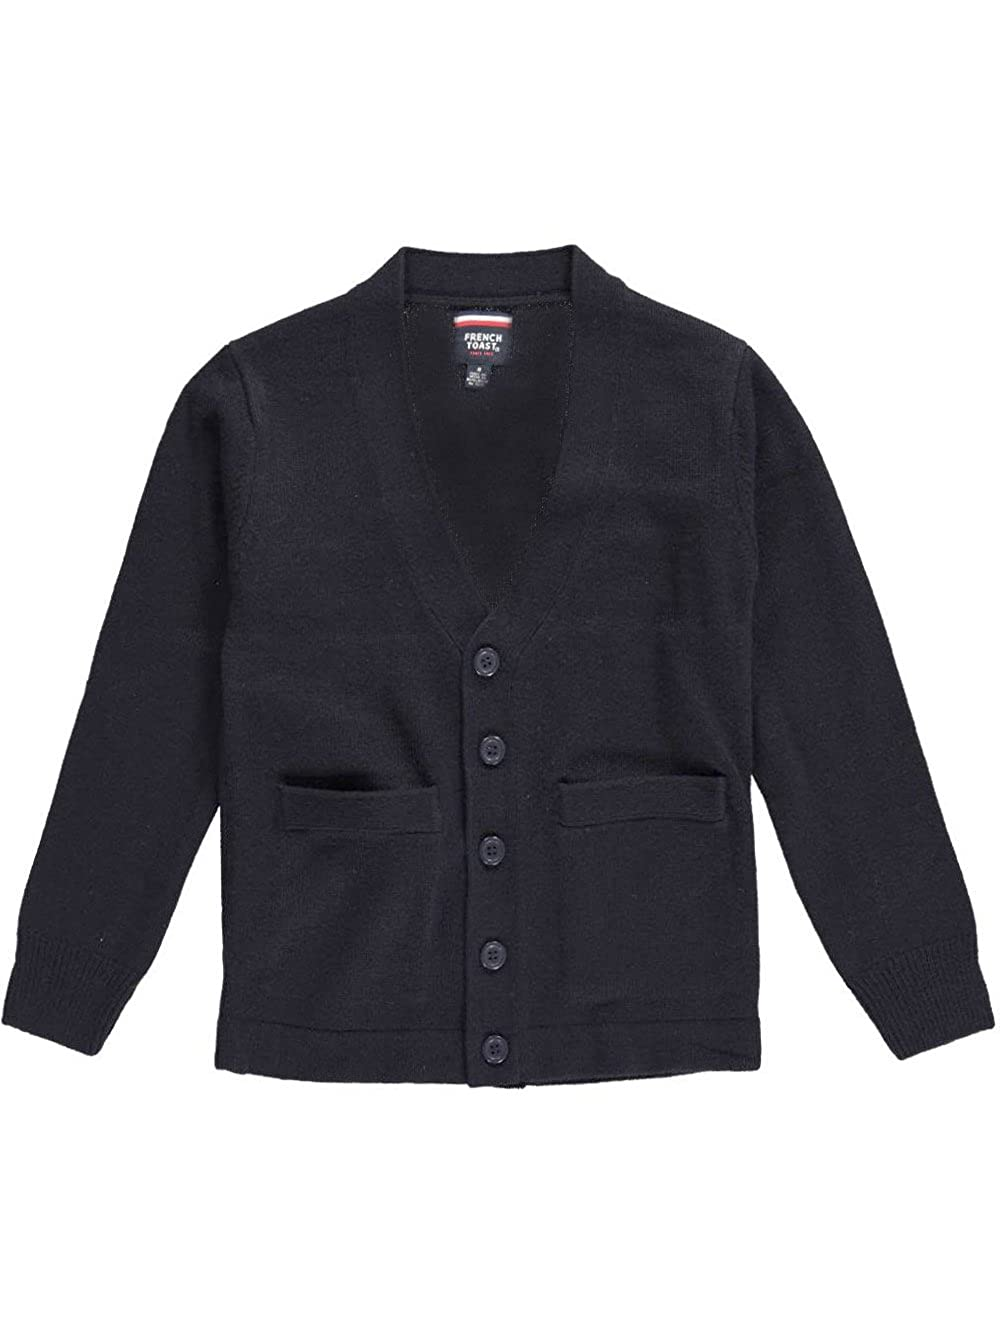 French Toast Little Boys' Welt Pocket Cardigan - navy, 4-5